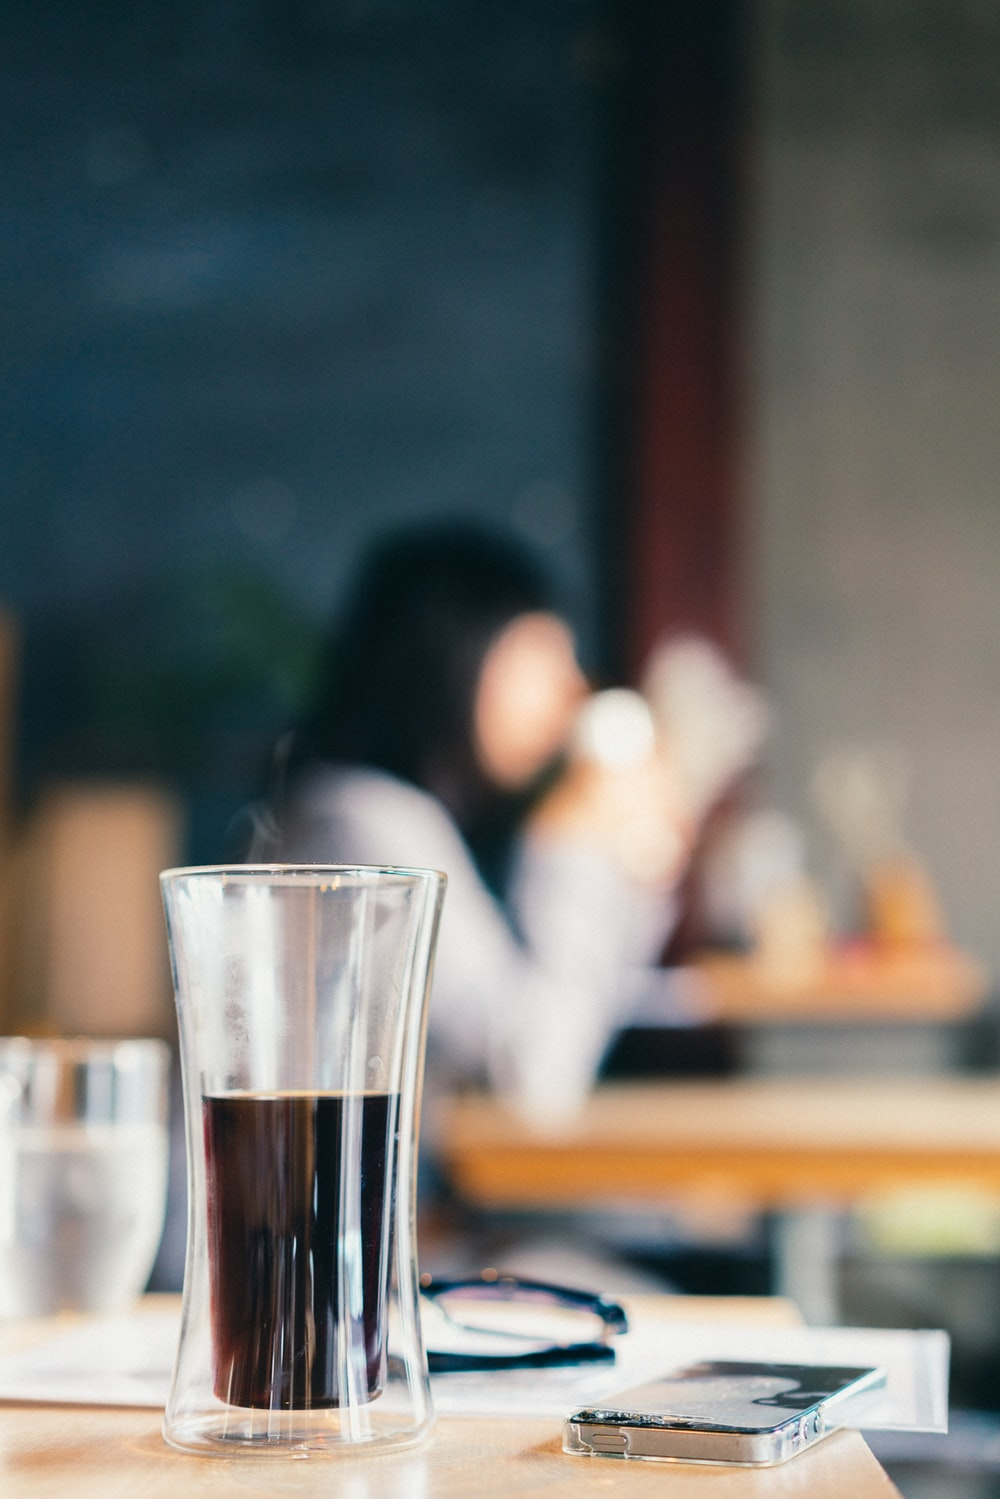 shallow focus photo of drinking glass with liquor